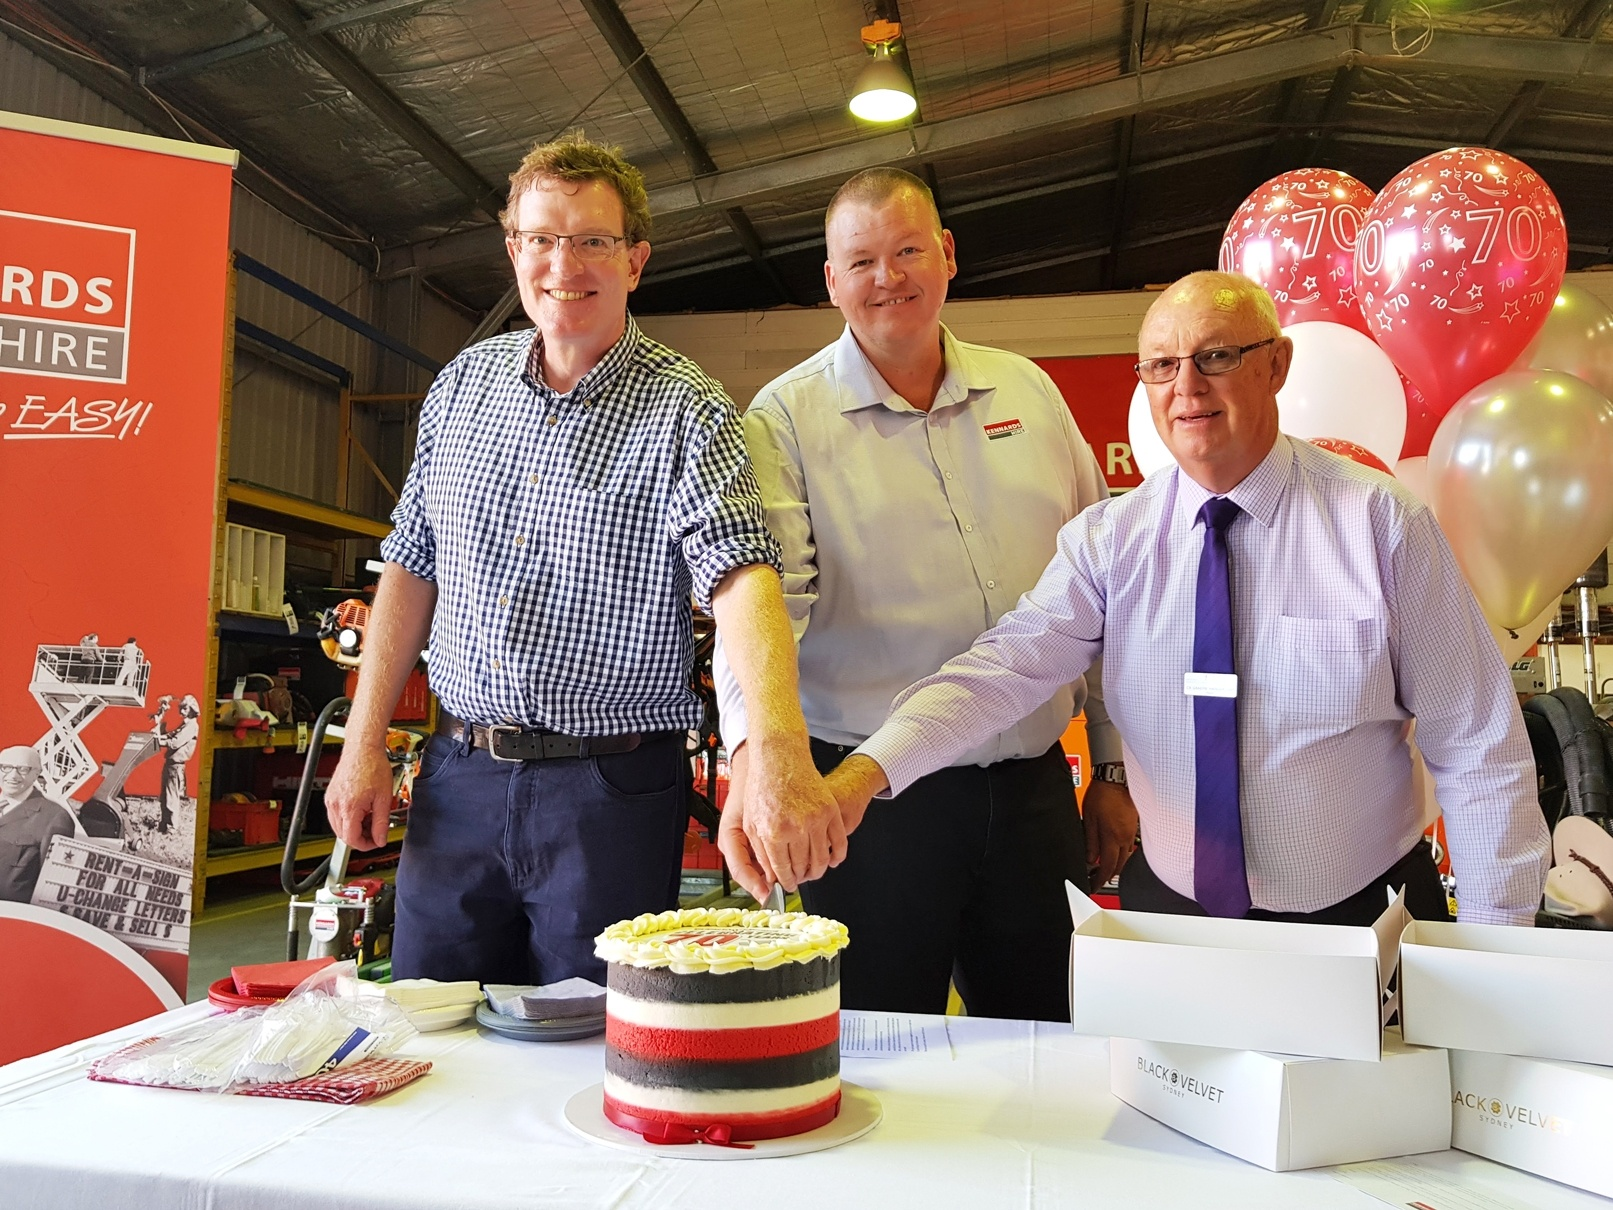 Kennards Hire Bathurst Branch celebrated with staff and local dignitaries and personalities, including Mayor Graeme Hanger OAM, The Hon. Andrew Gee MP, Federal Member for Calare, and Stephen Harper, Secretary of the Bathurst Business Chamber, as they cut a slice of 70th birthday cake in honour of this important milestone.